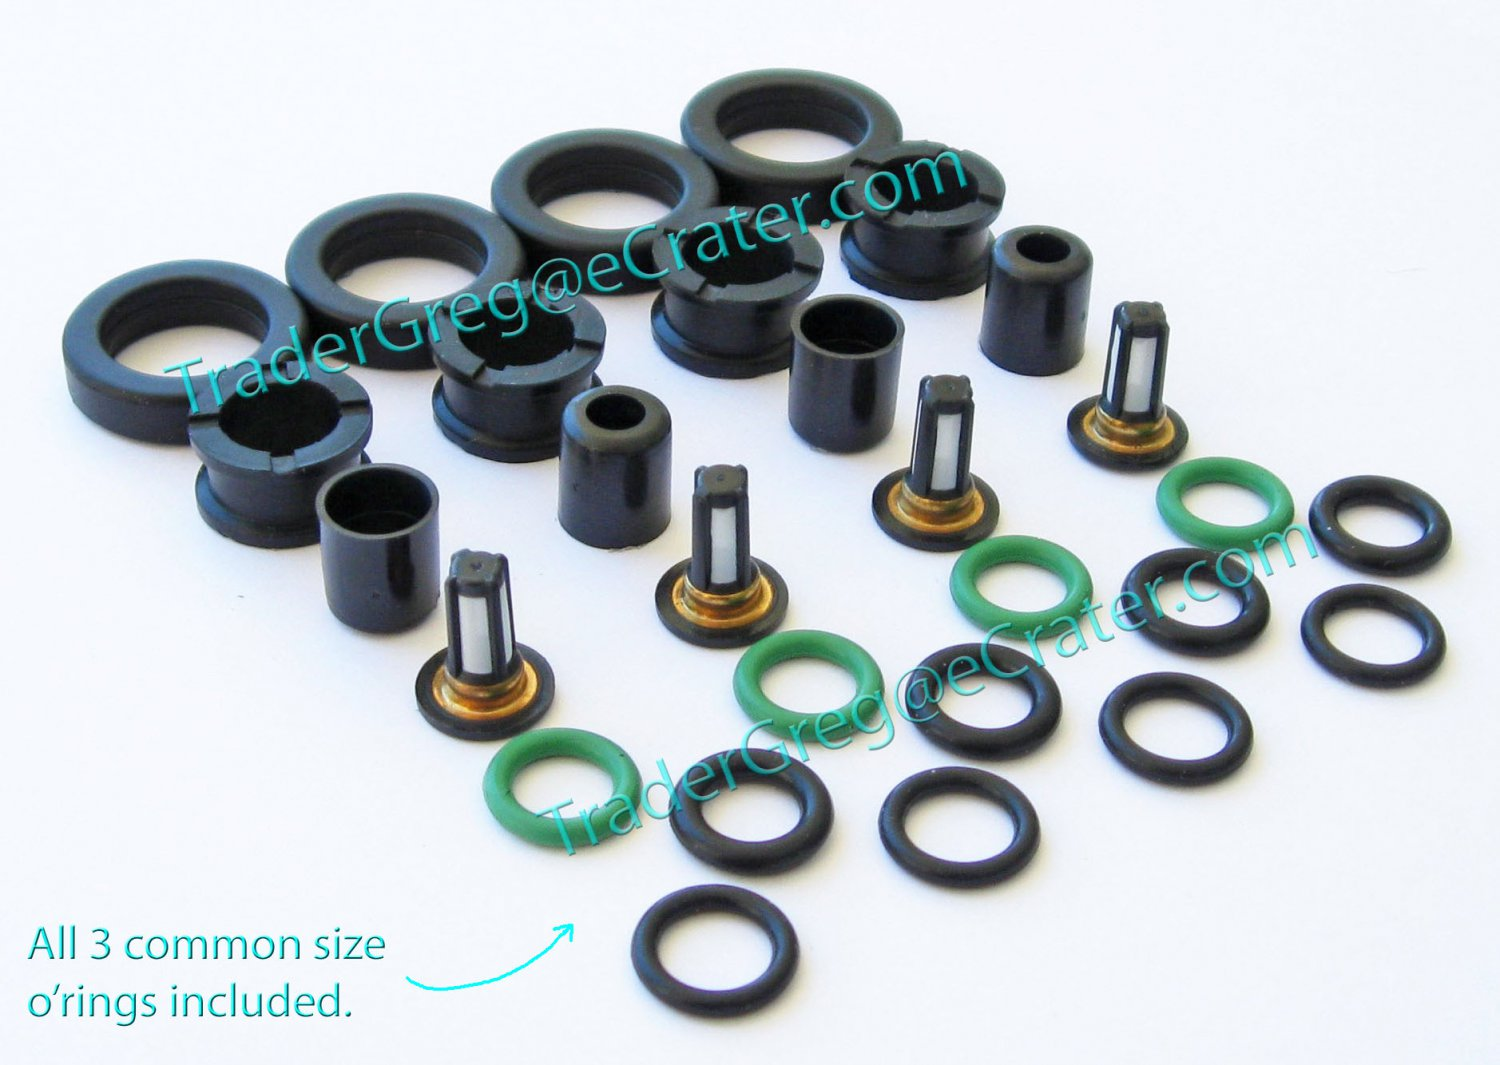 Fuel Injector Parts Honda Acura Seals Grommets Orings Filter Baskets Accord Civic